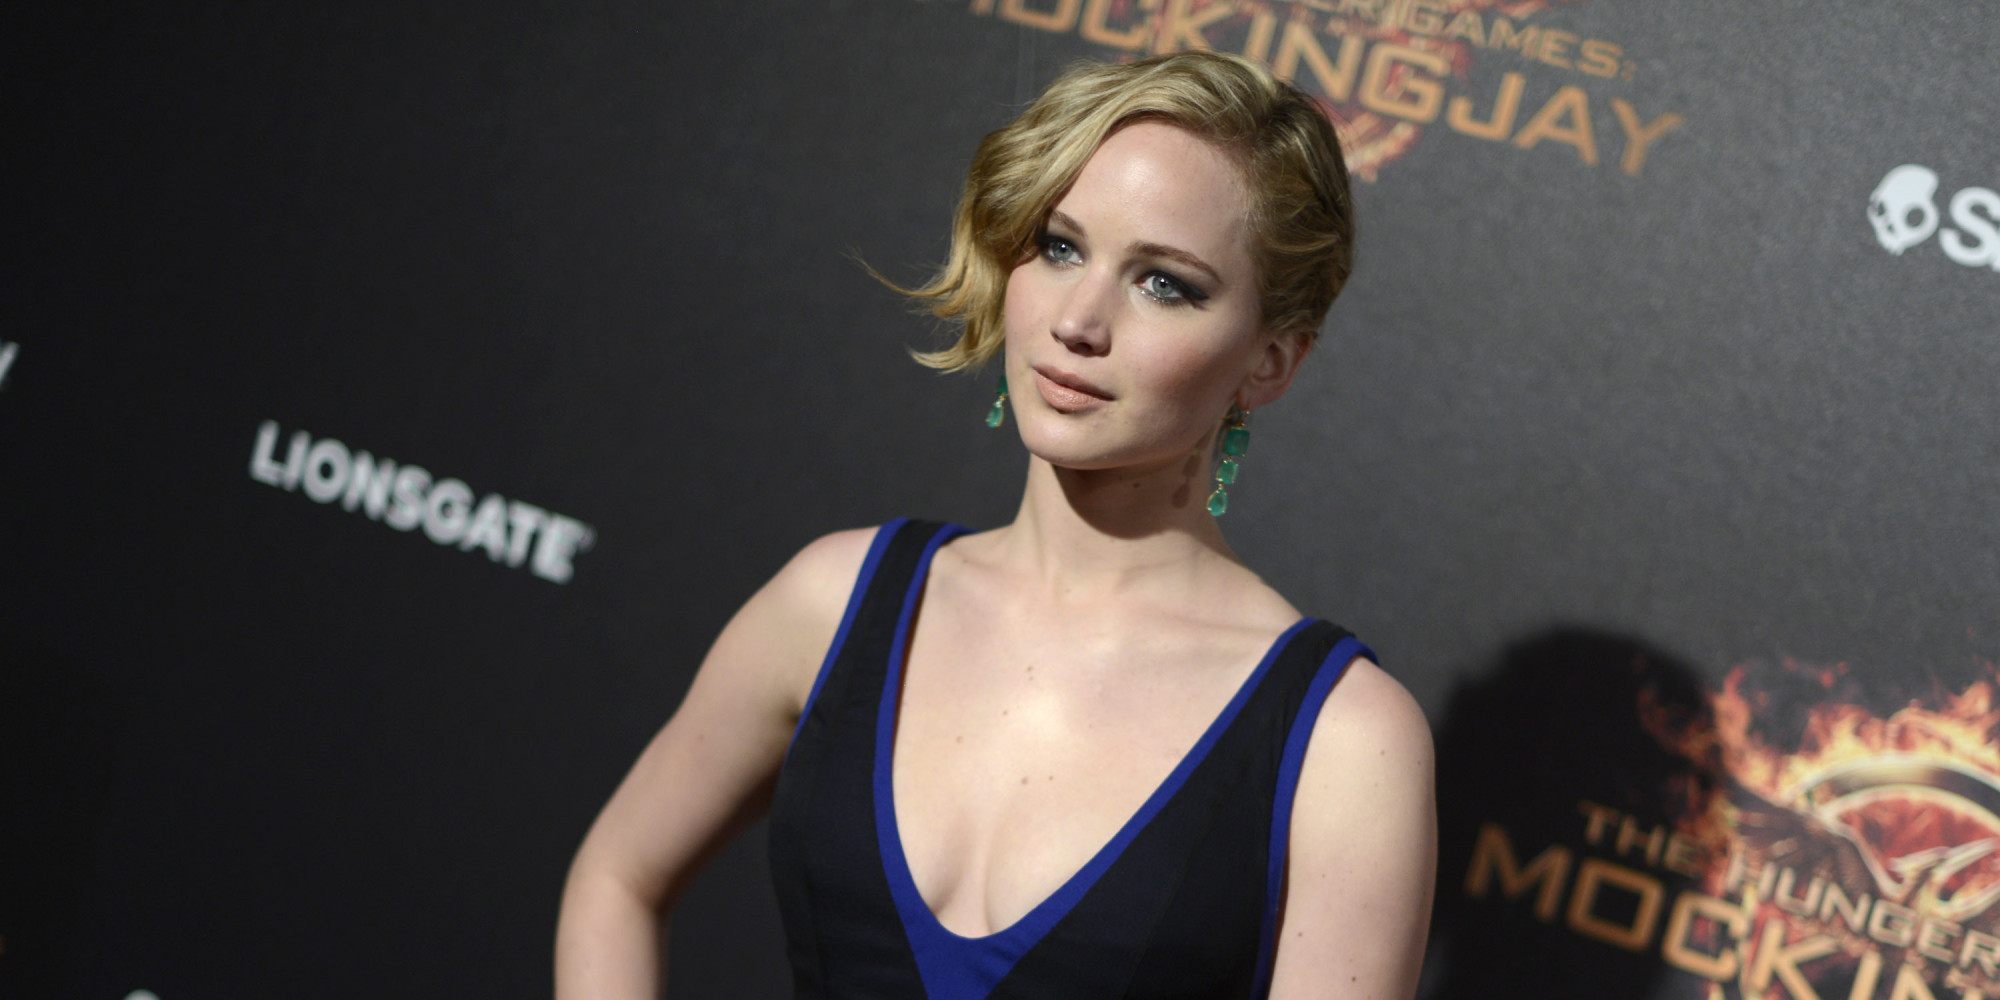 Jennifer lawrence s nude photos leak online other celebs targeted